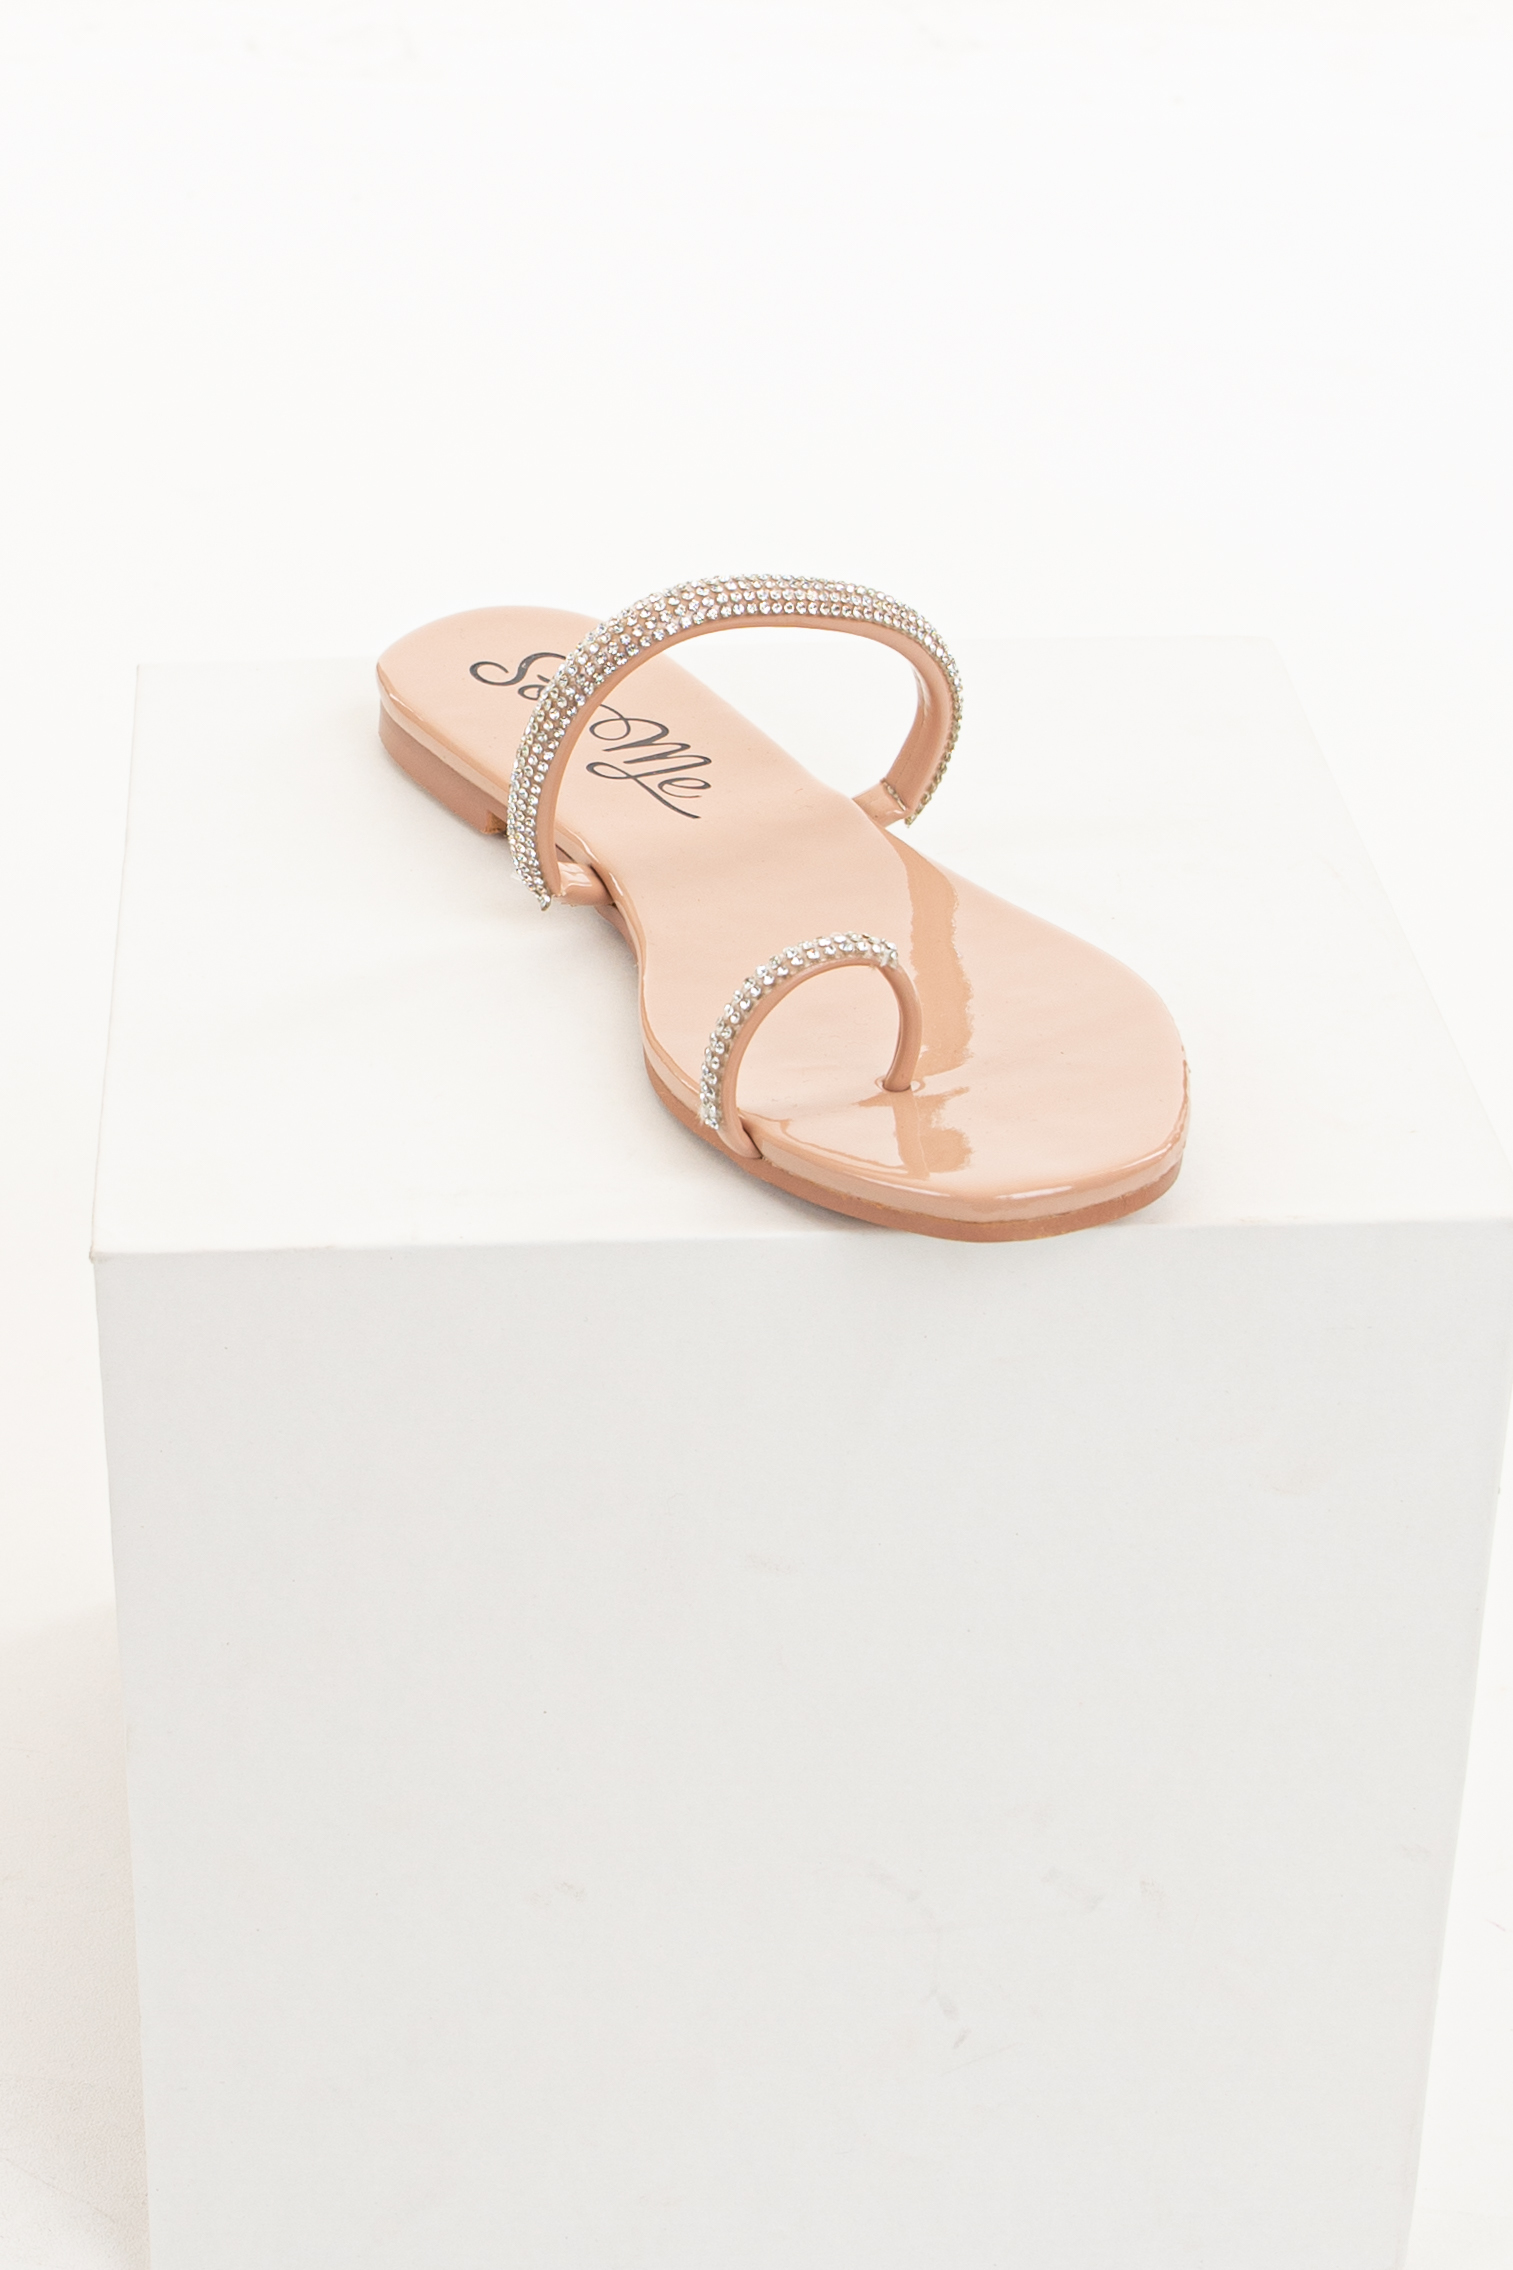 Blush Dual Strap Slip On Sandals with Rhinestone Details